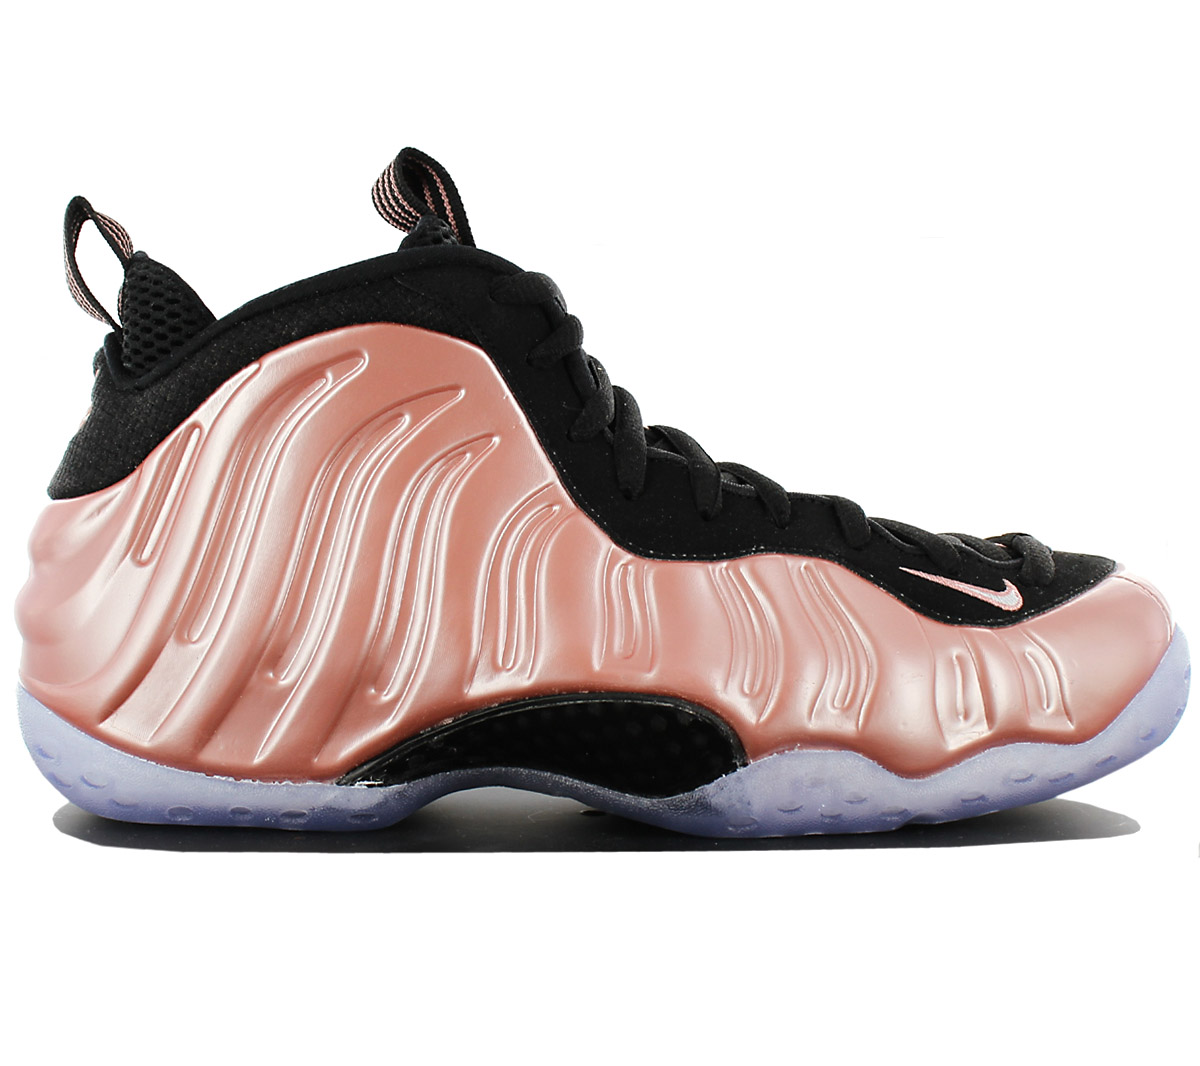 ad675d86666 Nike Air Foamposite One Elemental Rose Men s Shoes Baketball Shoes ...